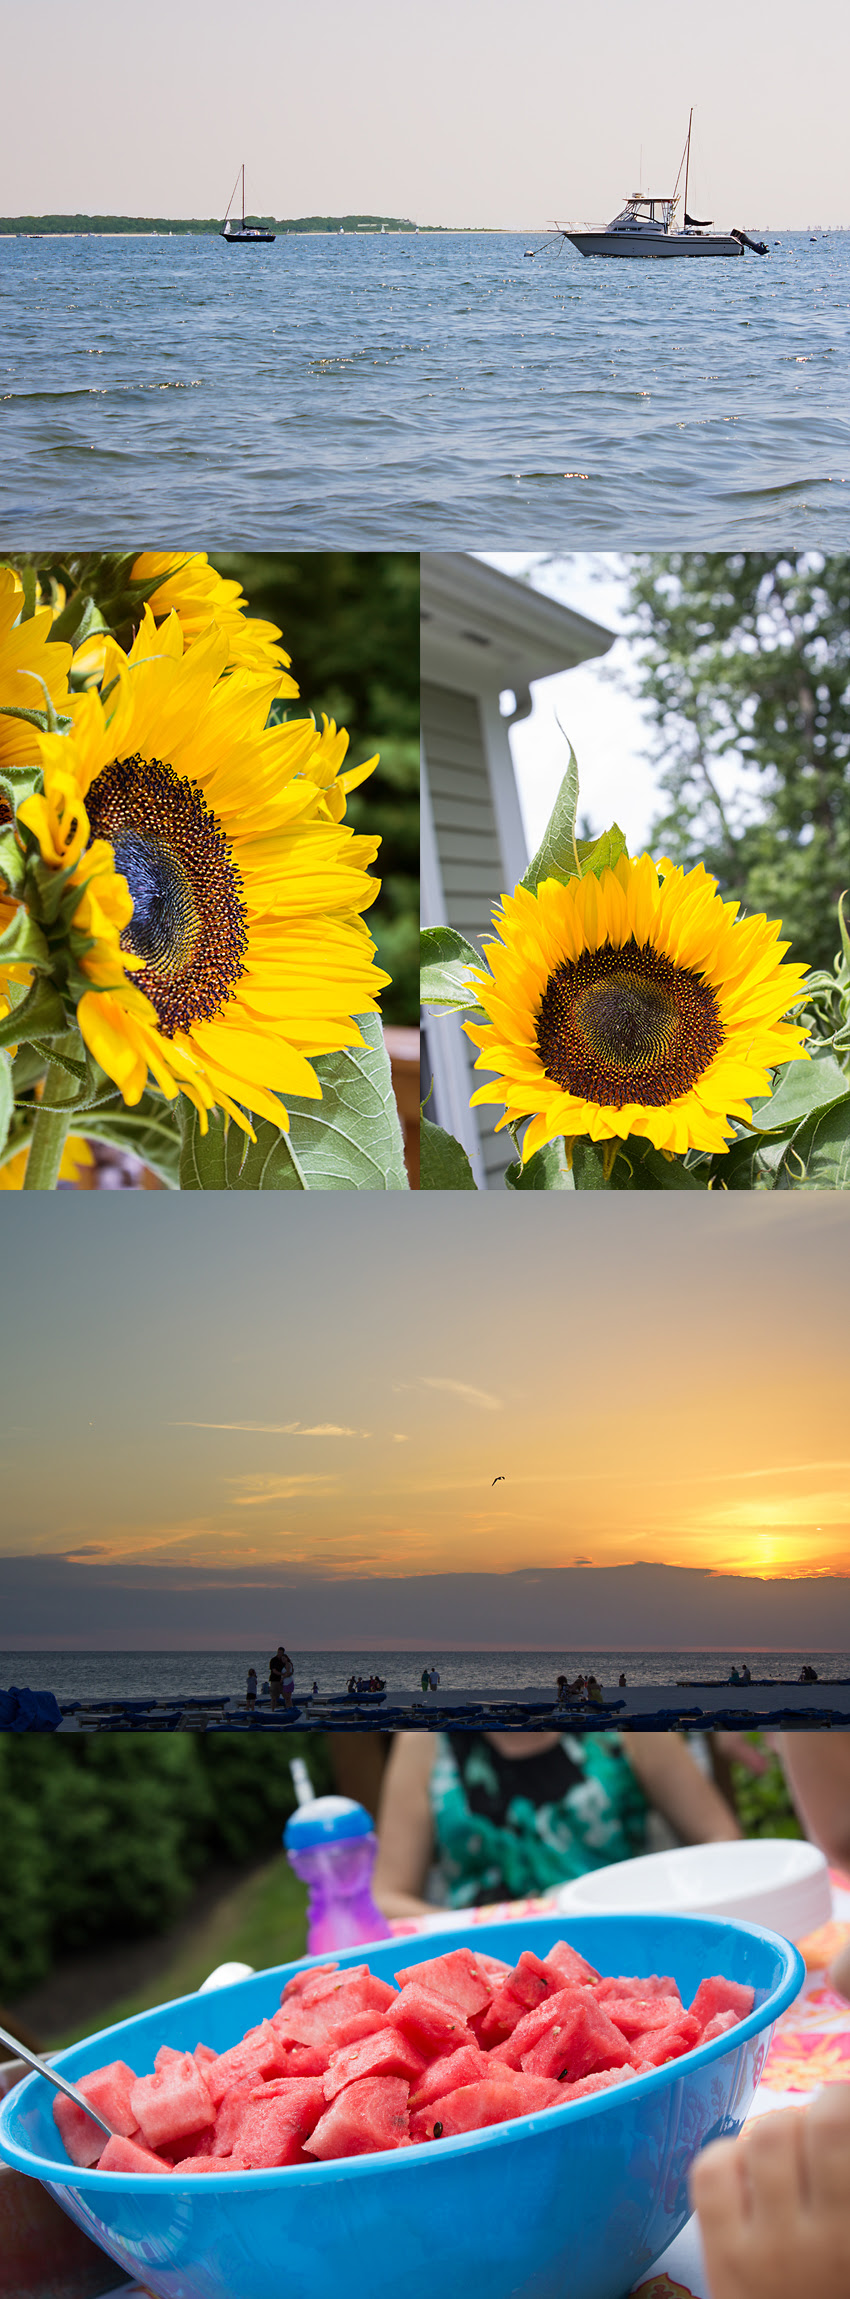 Summer sunflower cape cod waves boat fruit salad watermelon sunset collage storyboard